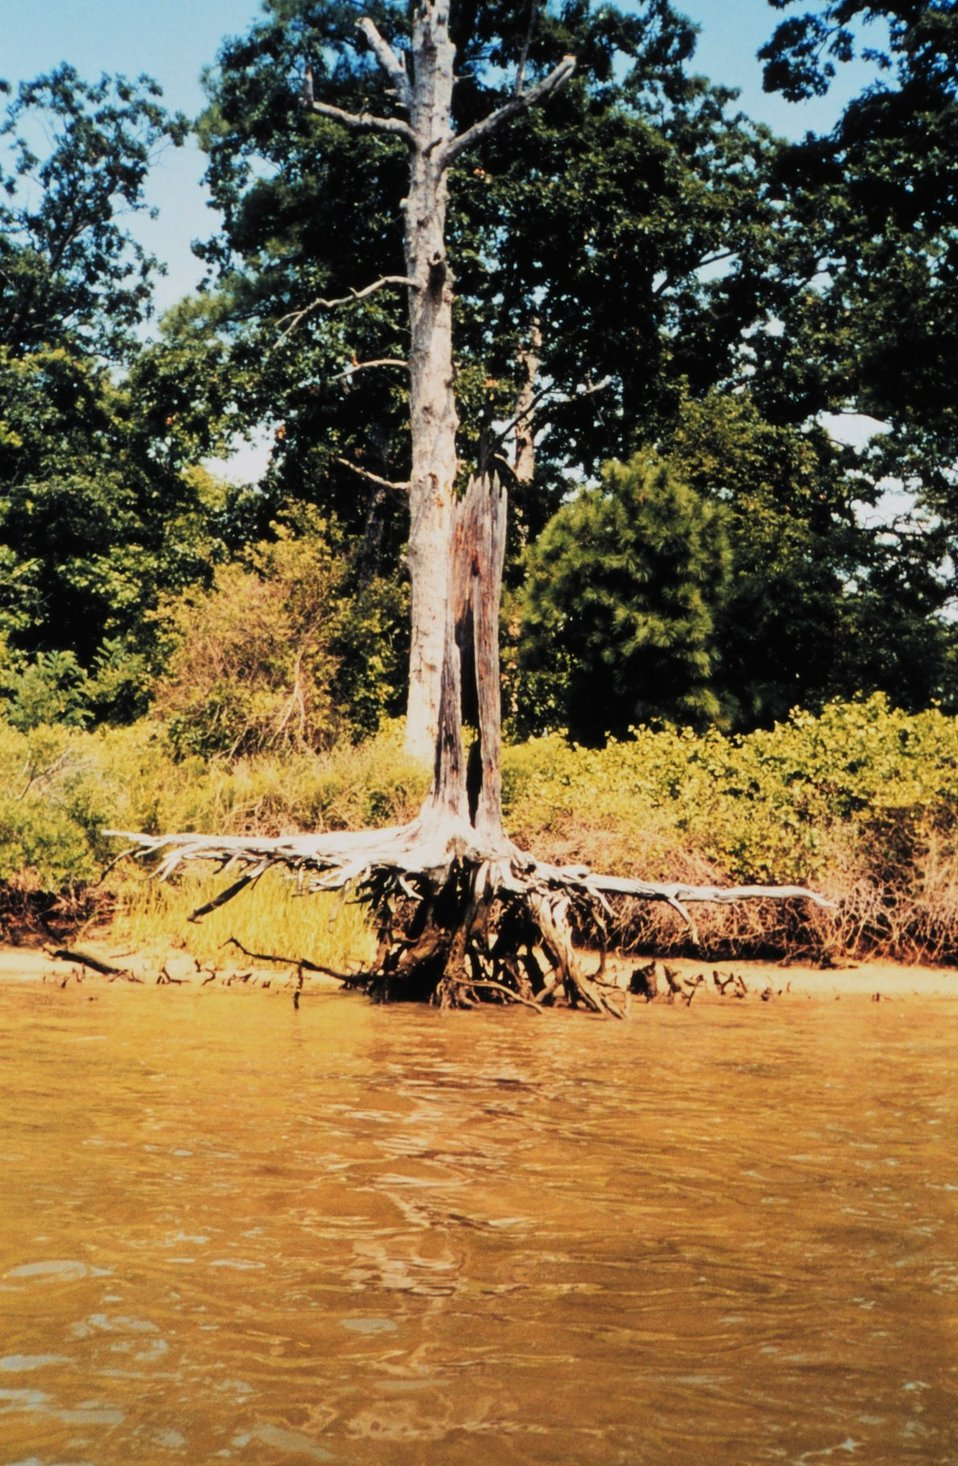 Stump of a large tree still standing though roots exposed and outstretched.  At the mouth of Dividing Creek on Wye Island.  This gives an indication of the extent of erosion in this area.